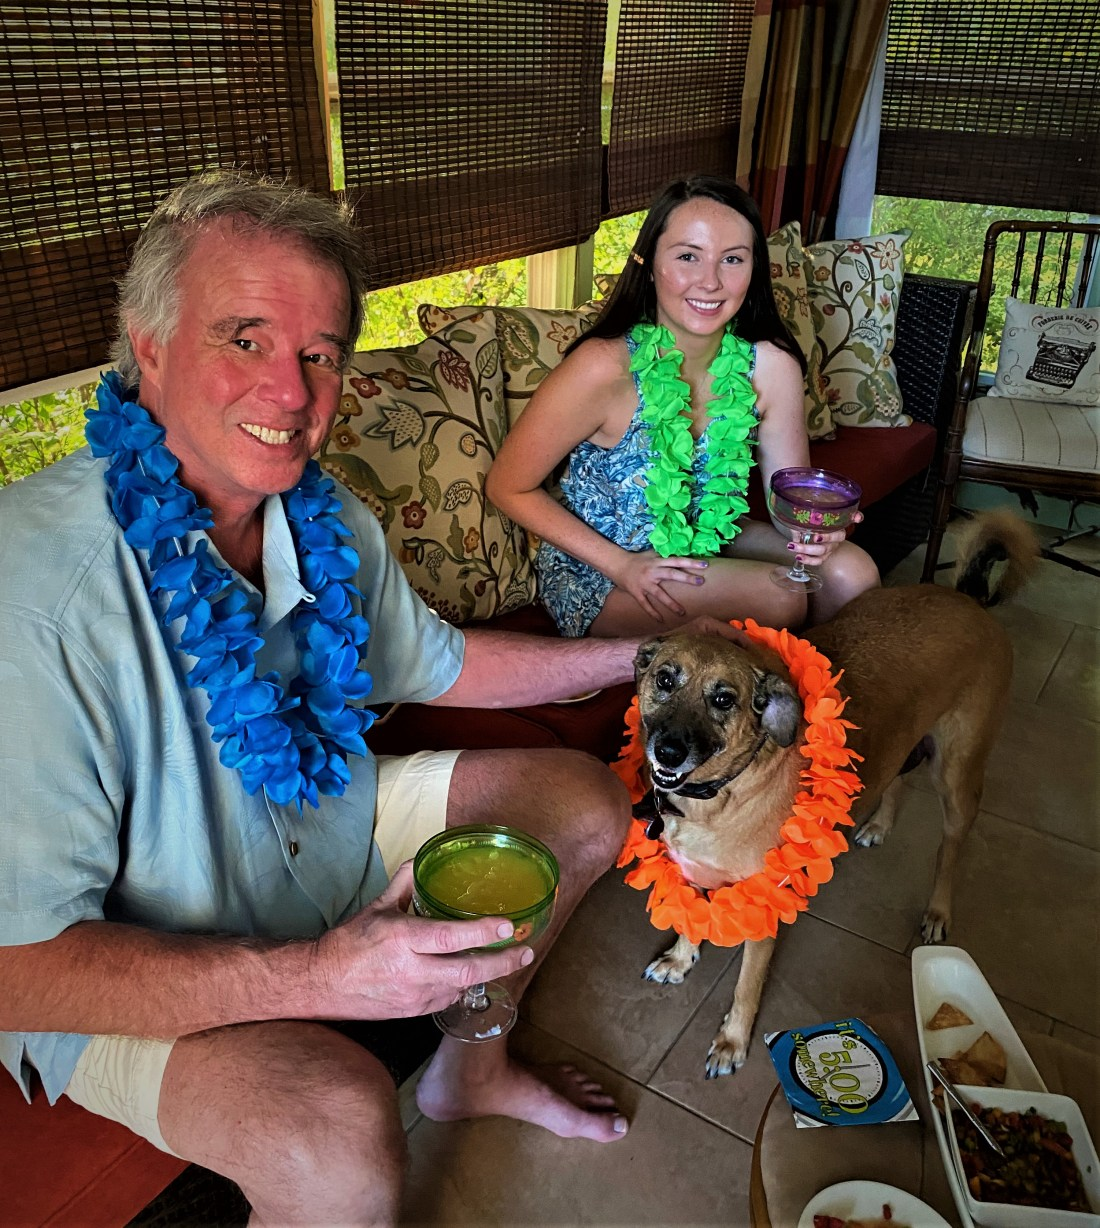 Mike Pound sitting on the couch on the three season porch. Sitting next to him is his daughter Emma and between them is their dog Caicos. Mike, Emma and Caicos are wearing leis.